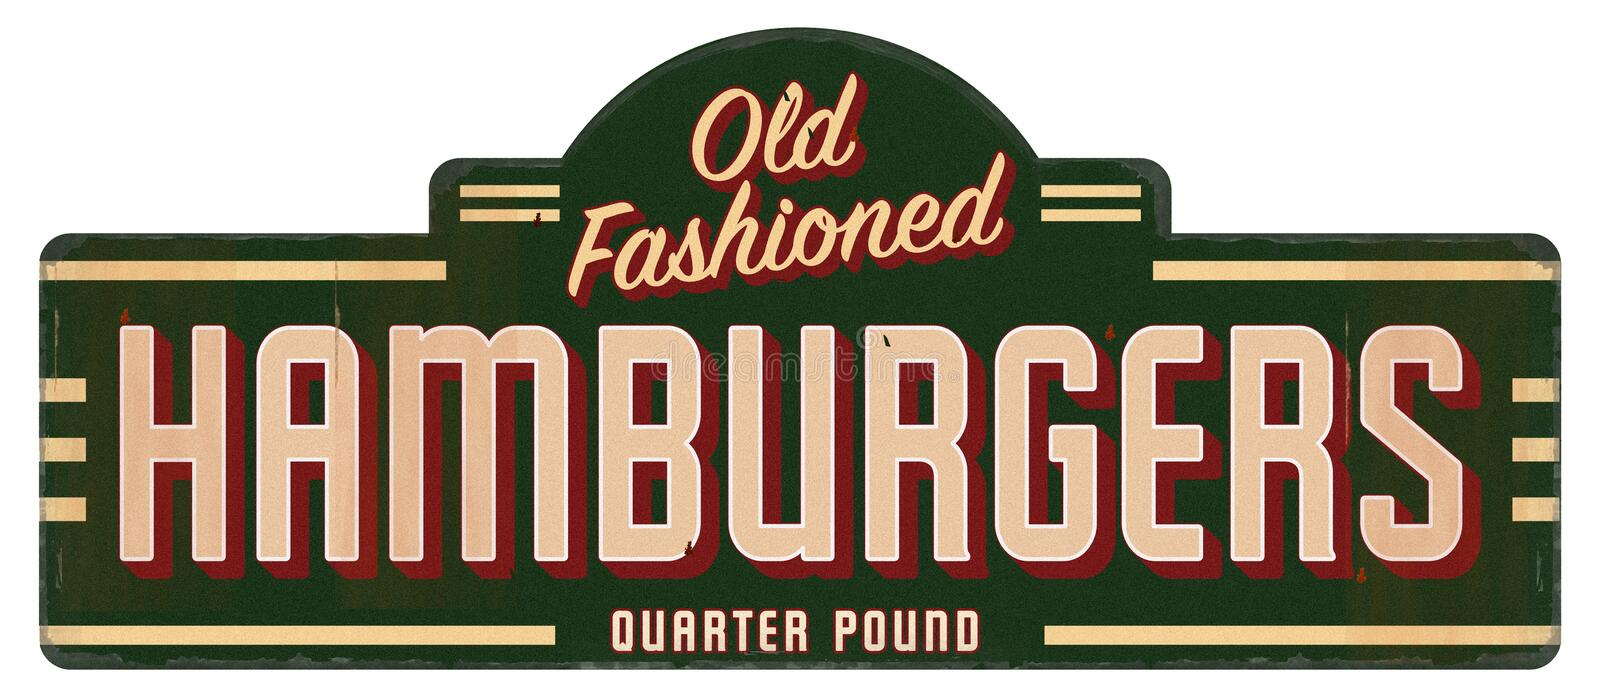 Retro Hamburger Sign Old Fashioned Quarter Pounder. Hamburger Sign Retro Vintage Old Fashioned Quarter Pounder 40s 50s 60s Diner Restaurant Grill stock photos